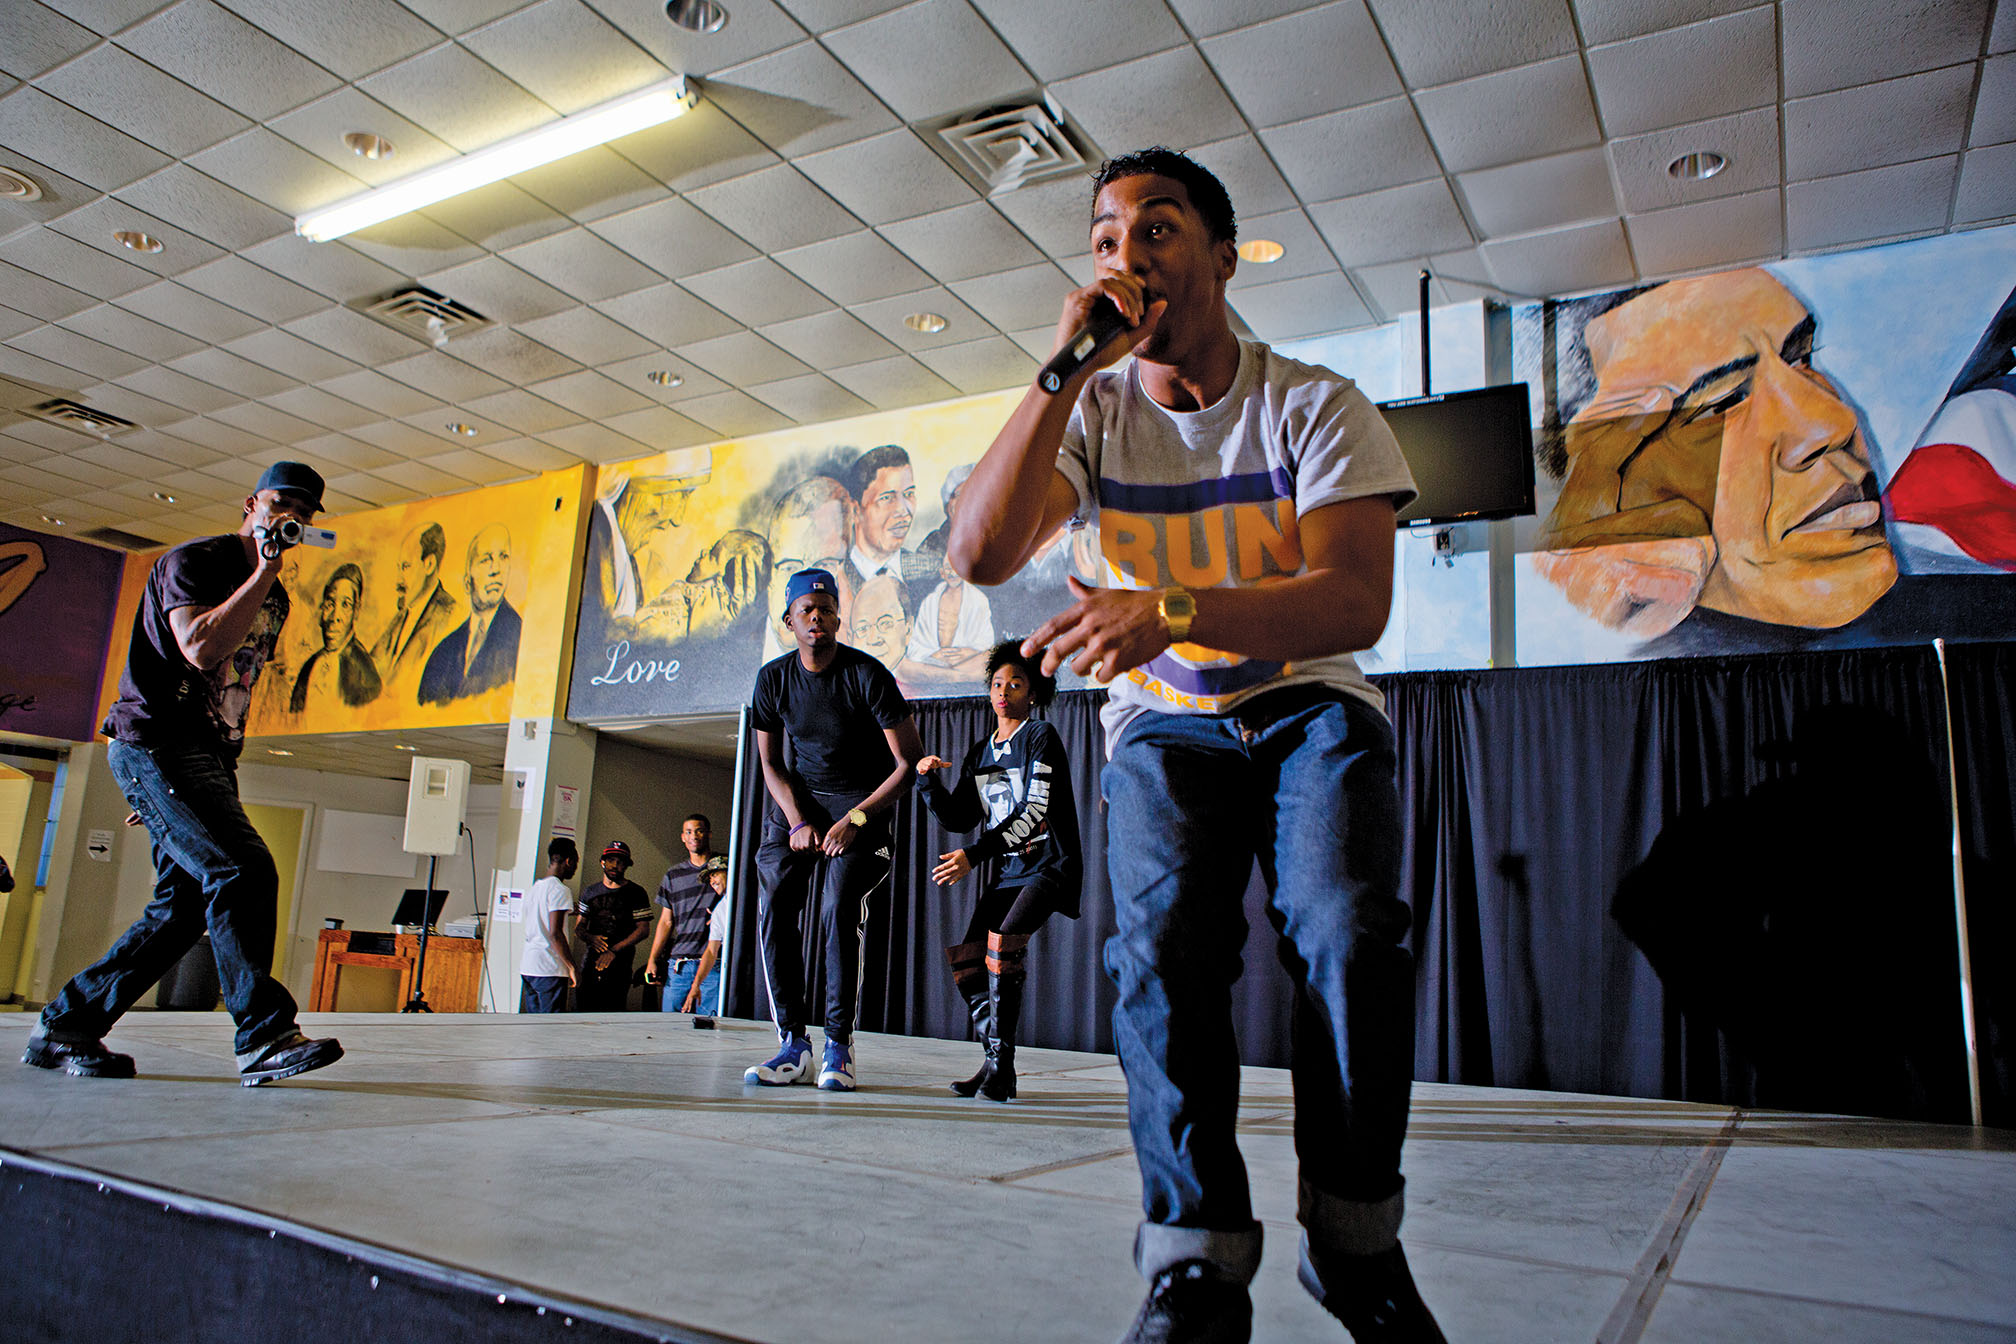 """Lee is unquestionably a serious student, but his talents don't end in the classroom. In fact, rapping as """"K-Rocz,"""" he brought down the house at the college's homecoming talent show."""